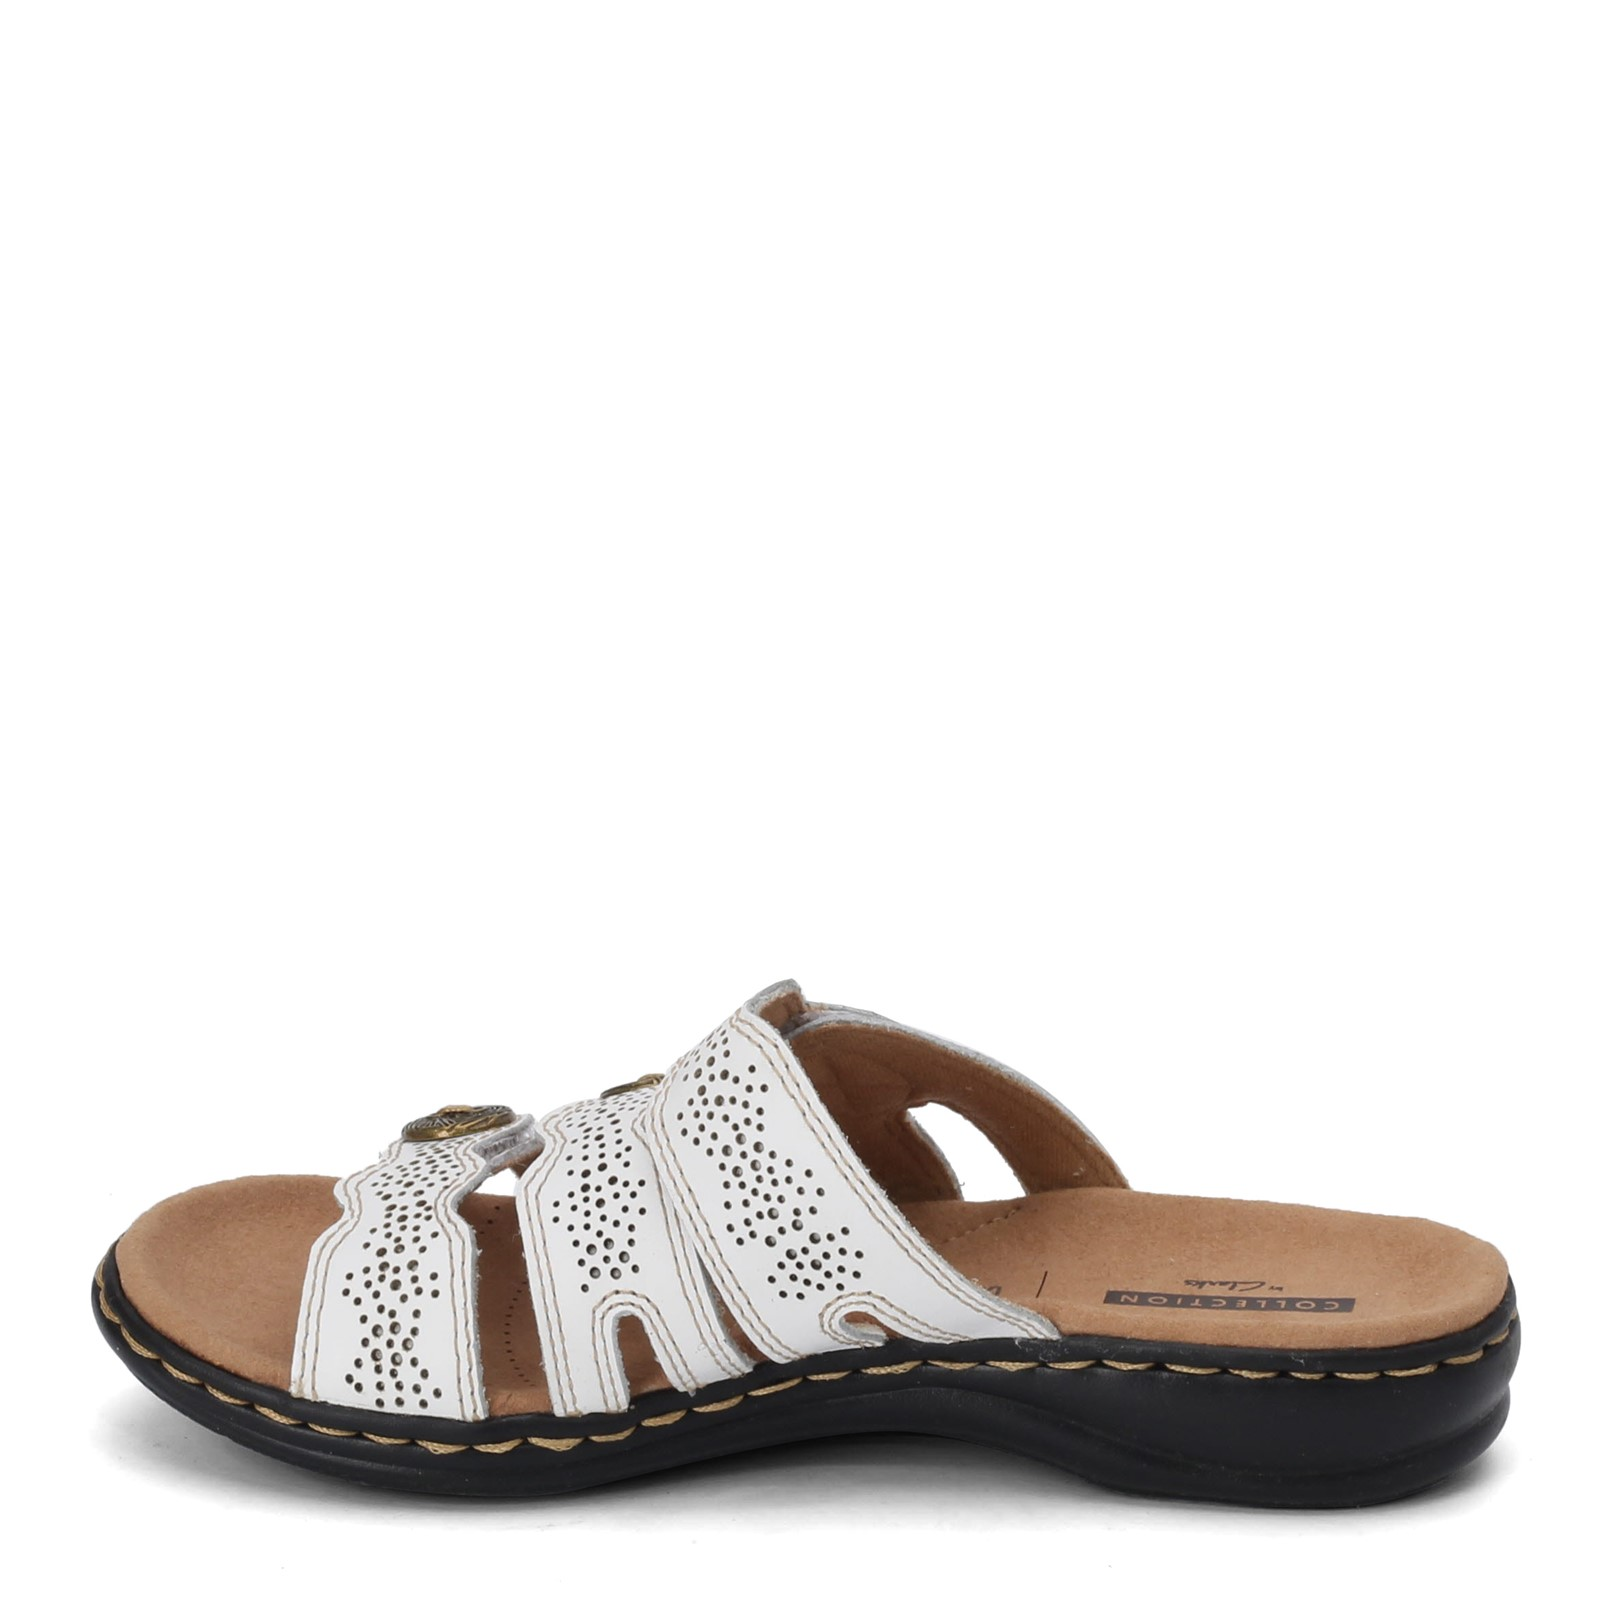 e37b3d545a Home; Women's Clarks, Leisa Grace Slide Sandals. Previous